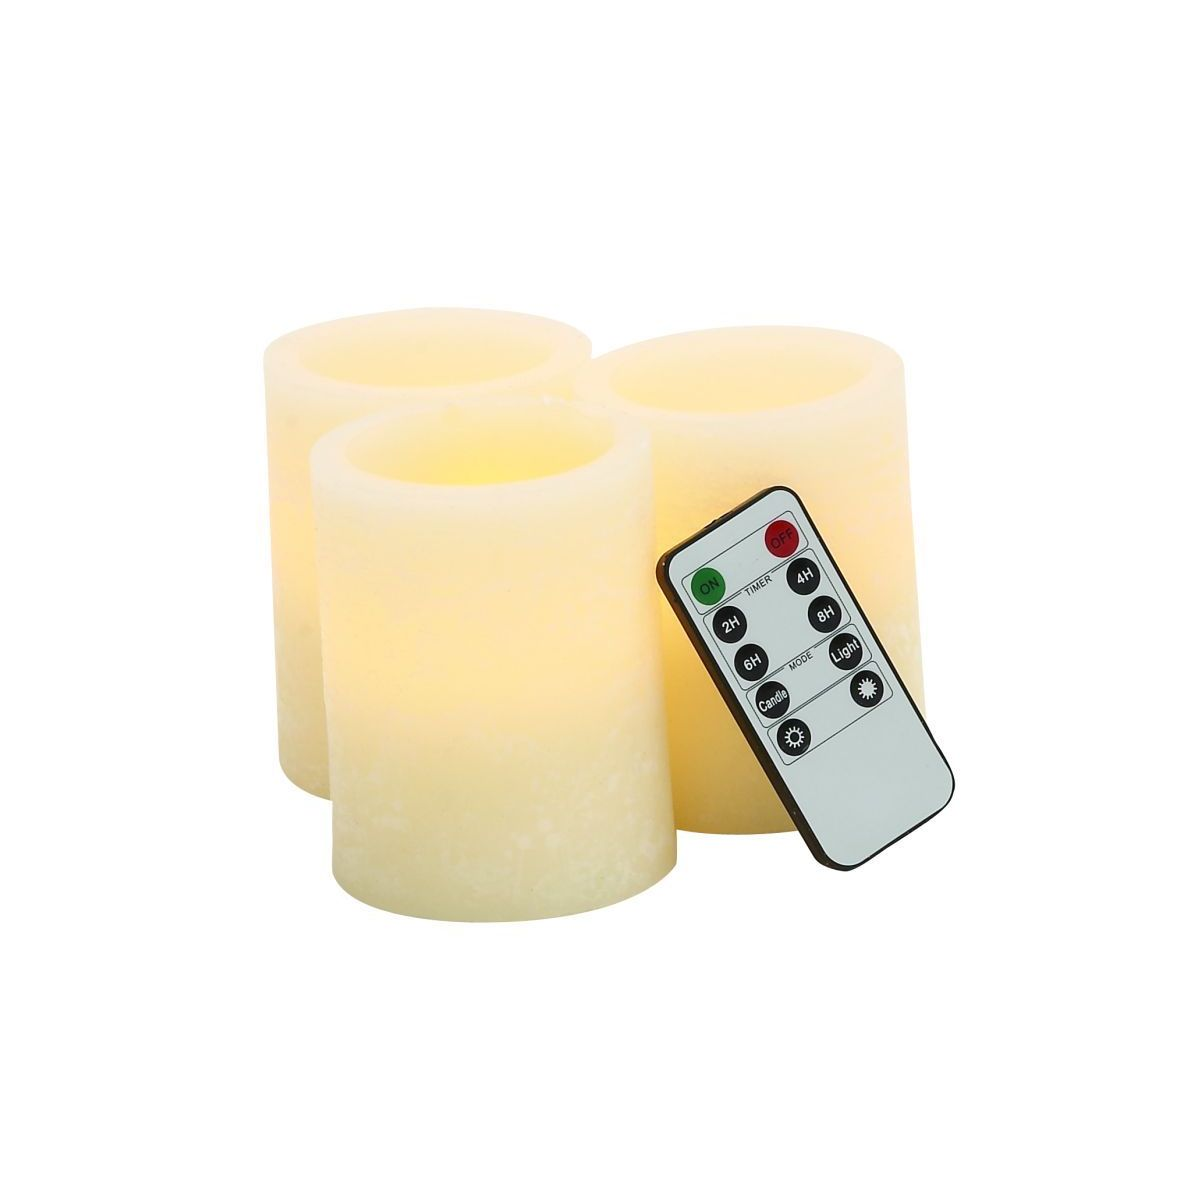 Ivory Resin 3-inch Wide x 4-inch High LED Flameless Pillar Candles With Remote (Pack of 3)